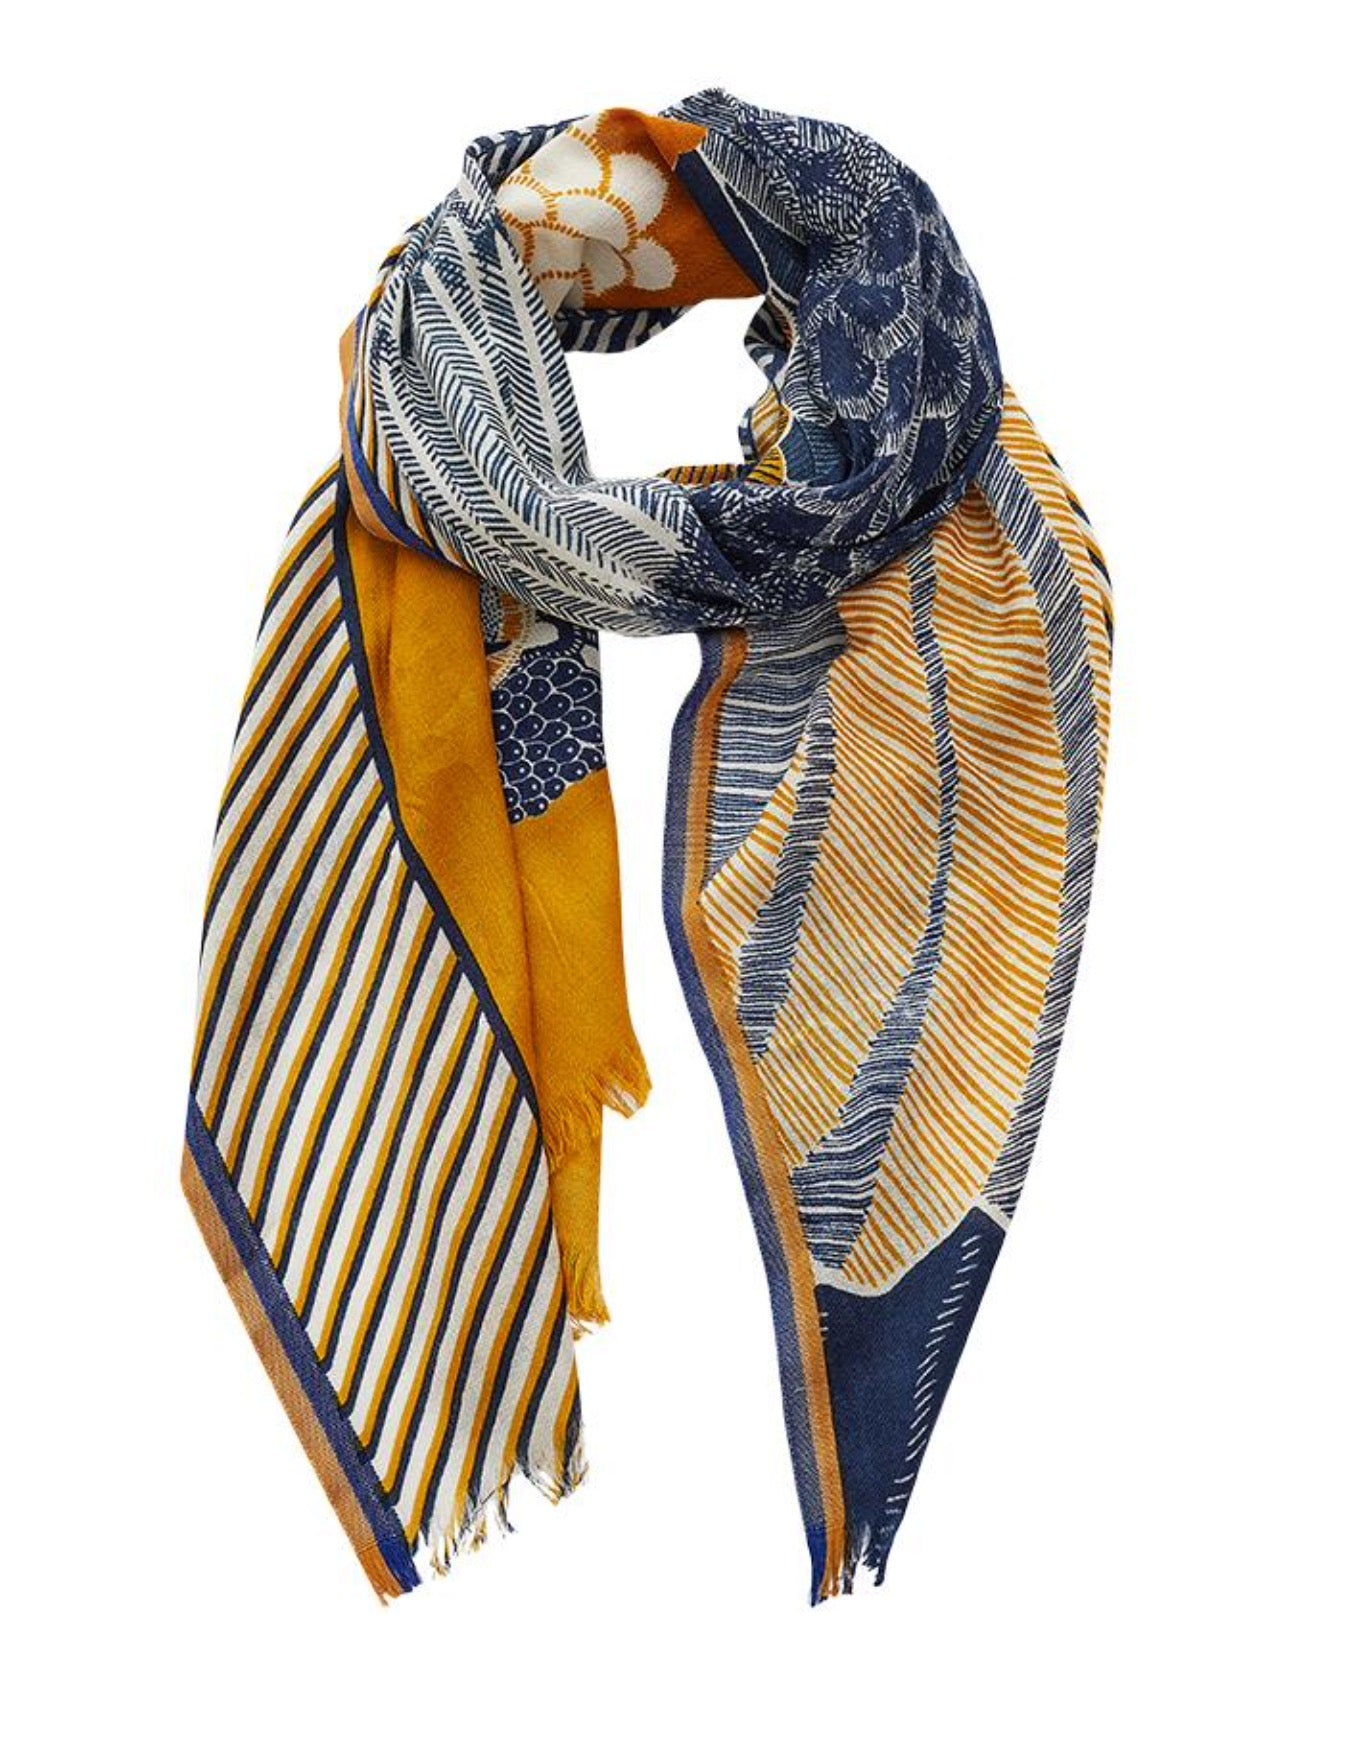 Inouitoosh pure wool Aquila scarf with eagle, in navy blue and mustard on a saffron yellow background.